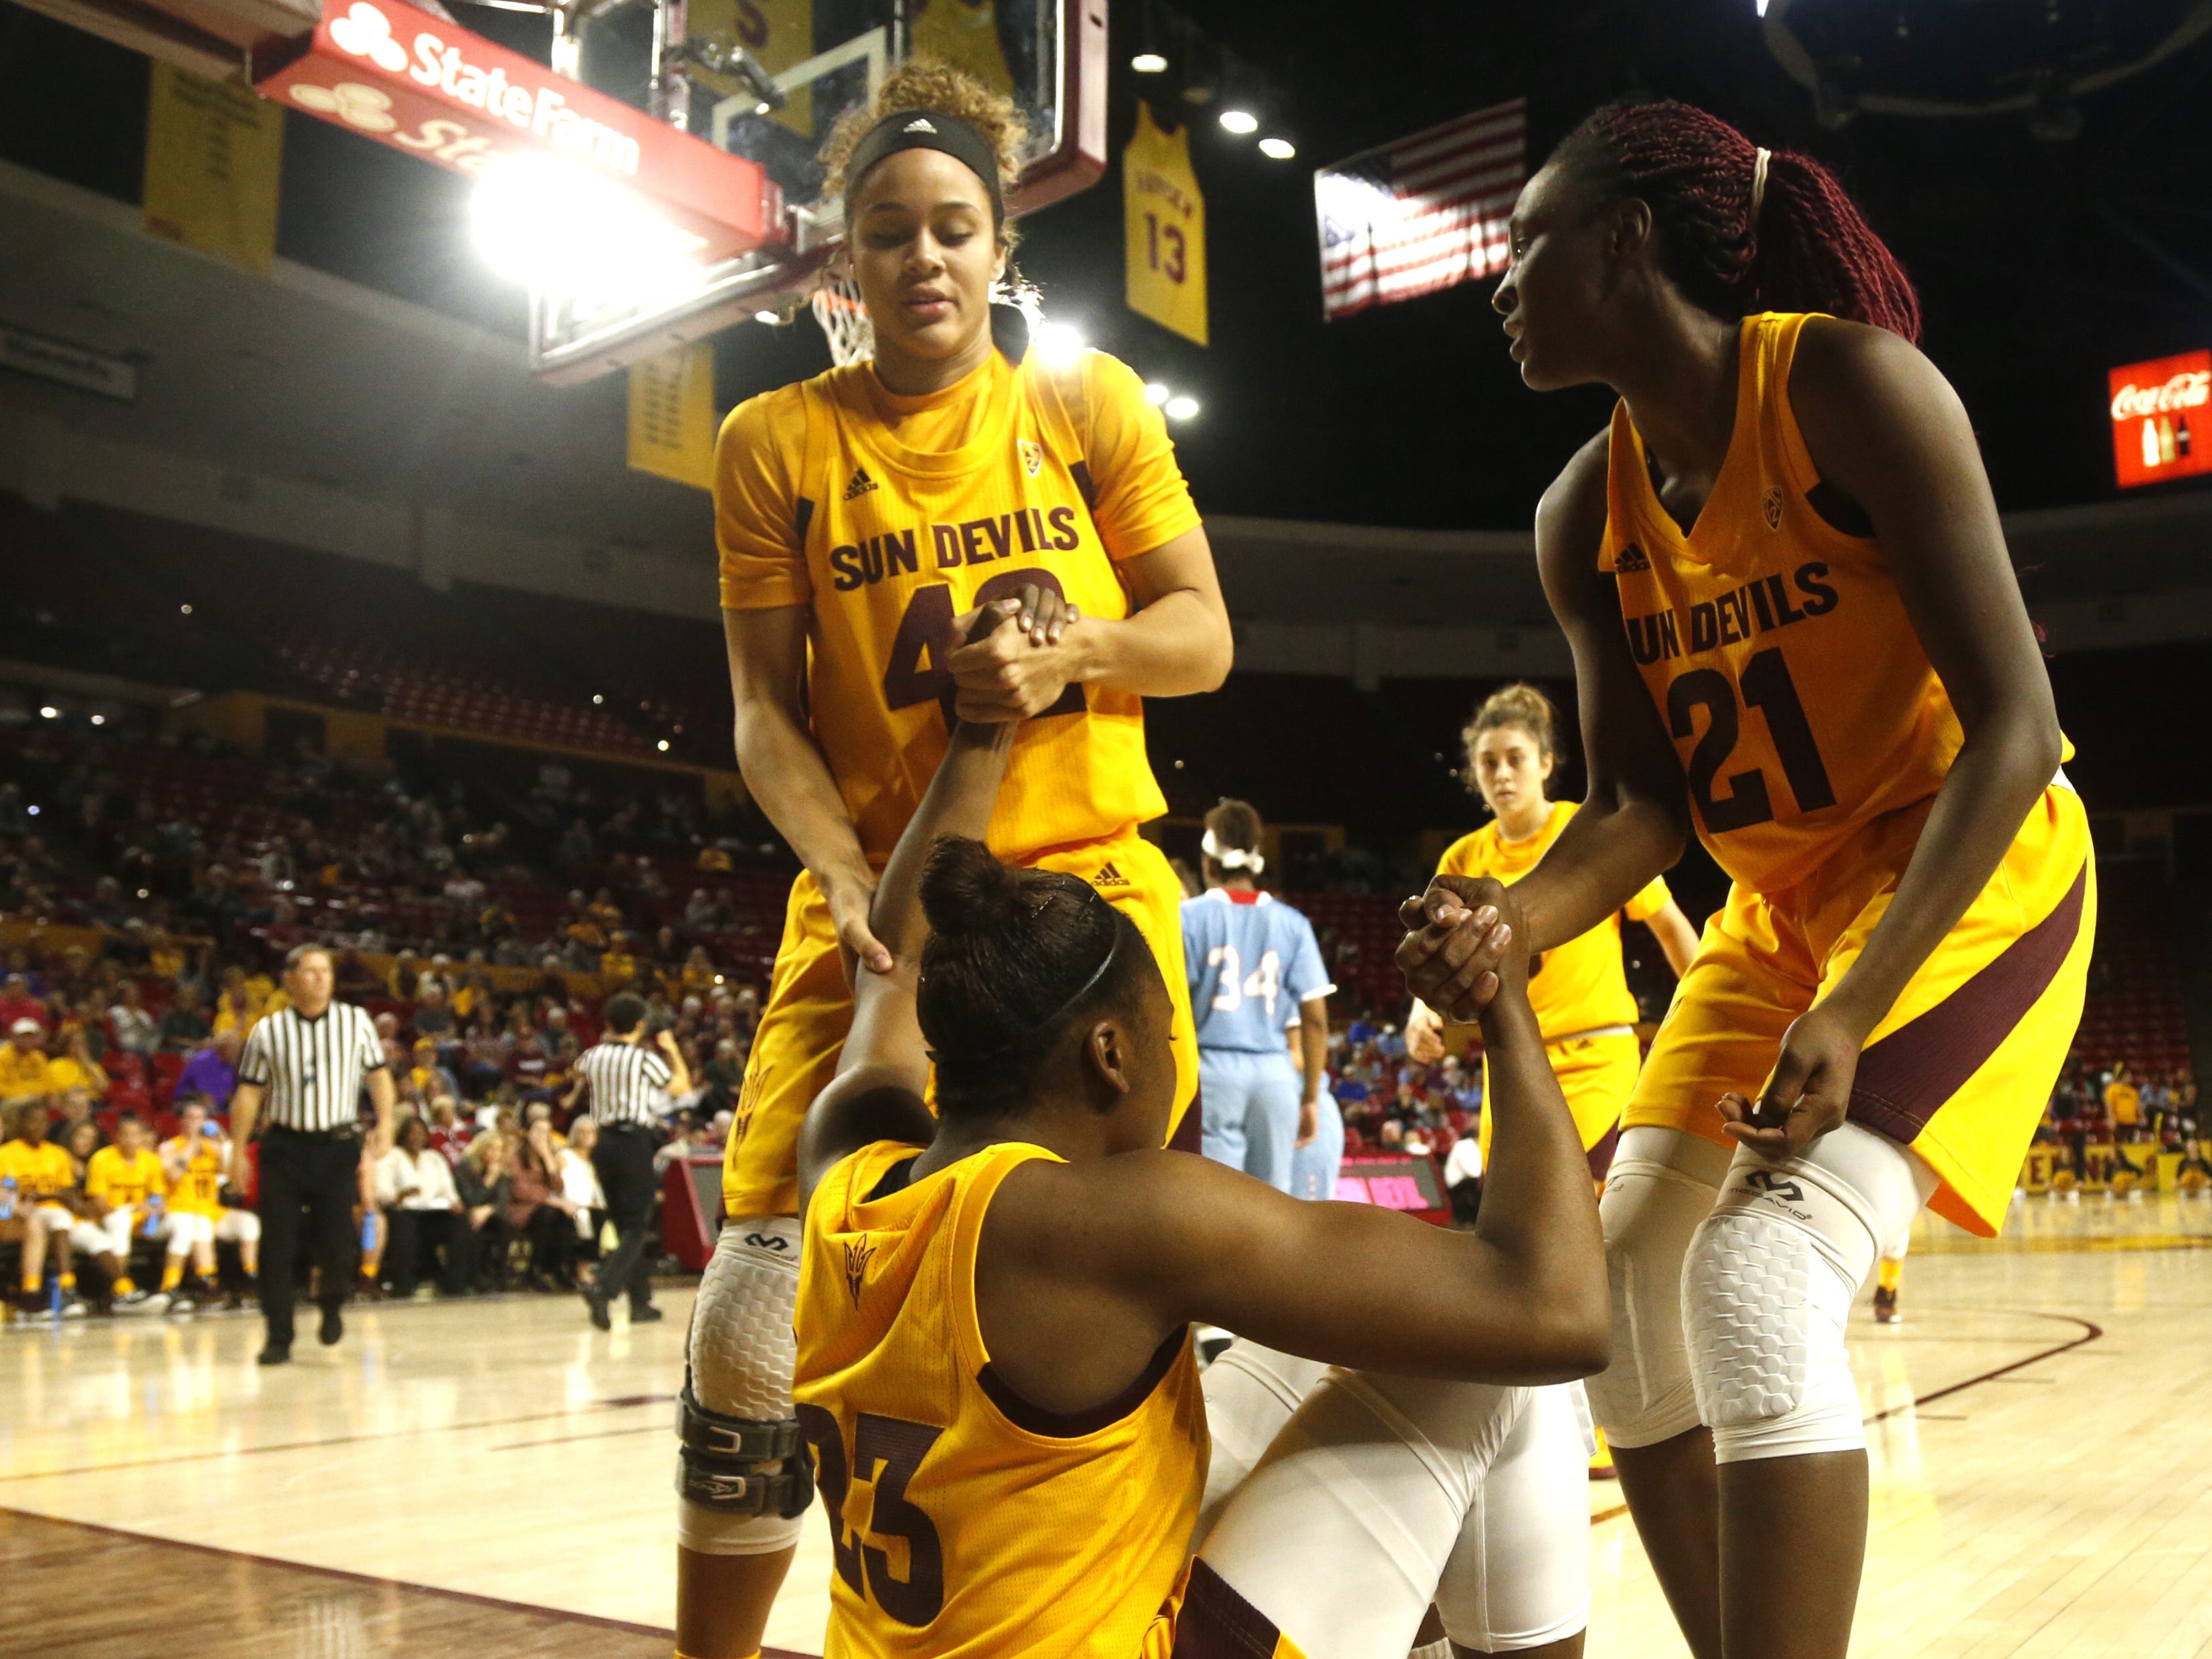 ASU's Kianna Ibis (42) and Sophia Elenga (21) lift Iris Mbulito (23) from the court during the second half at Wells Fargo Arena in Tempe, Ariz. on November 30, 2018.